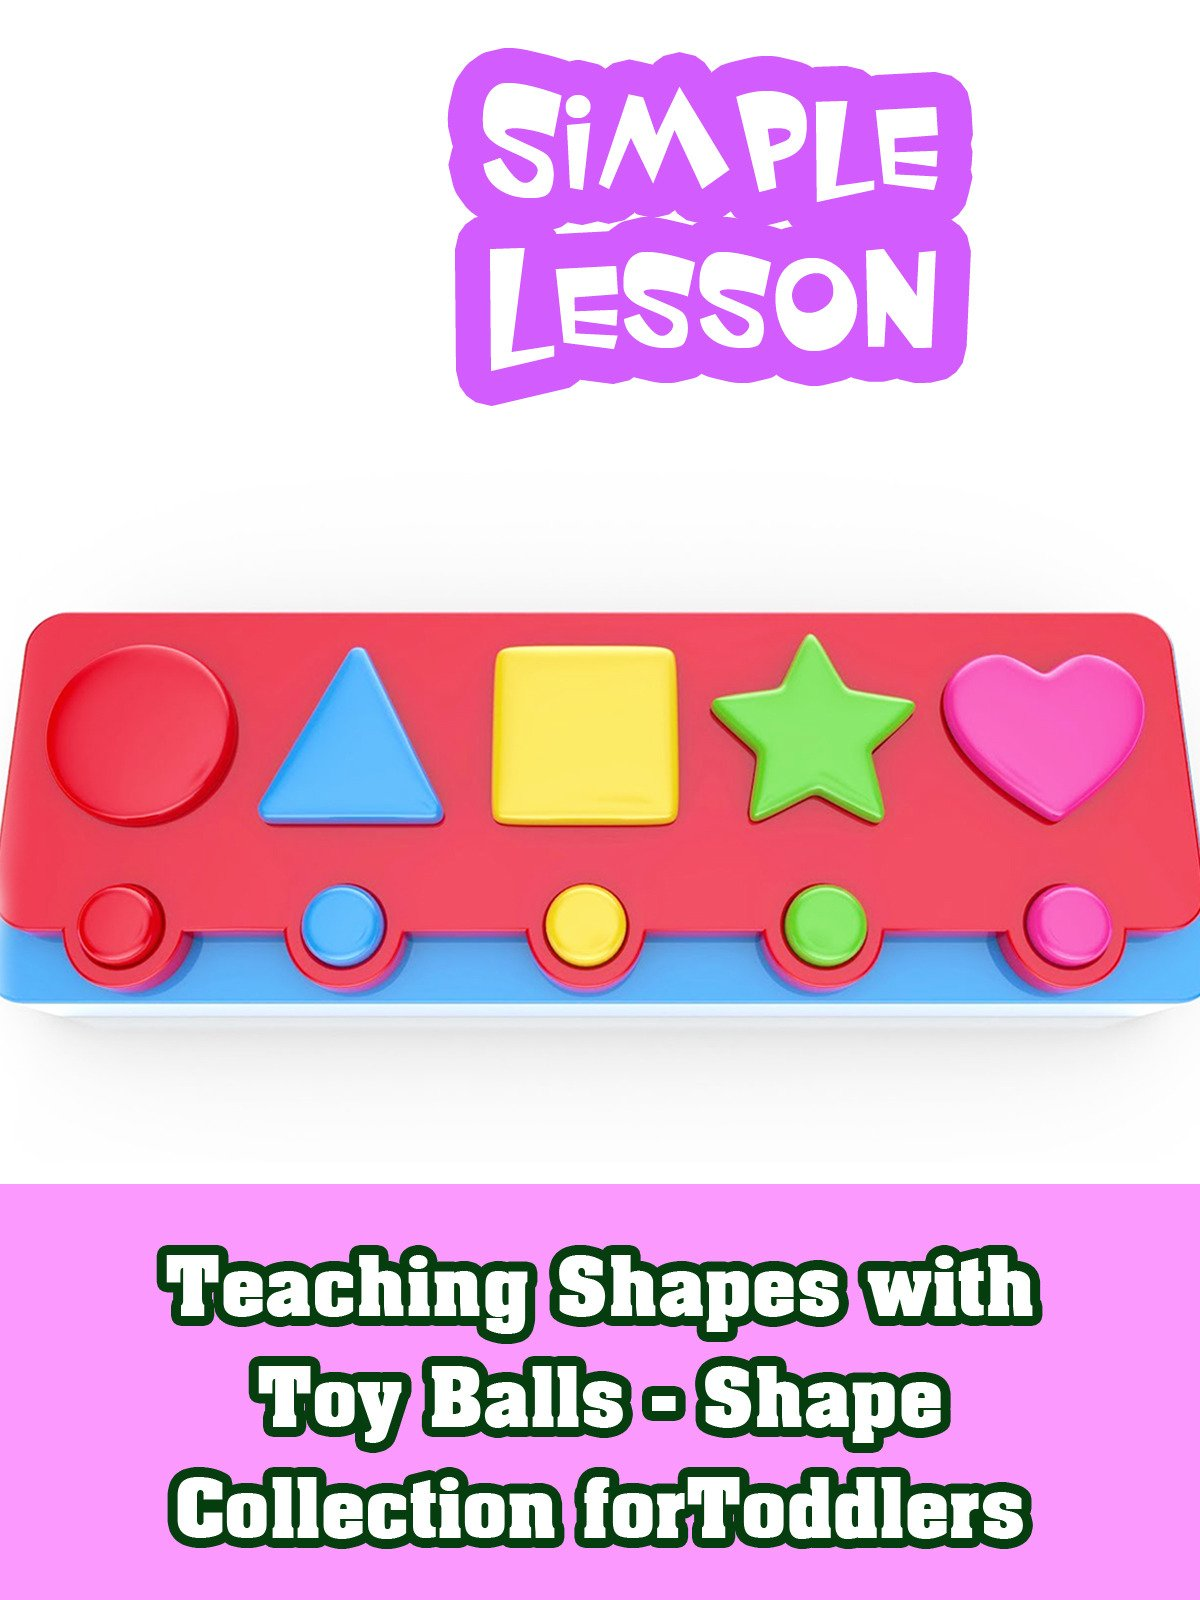 Teaching Shapes with Toy Balls - Shape Collection for Toddlers